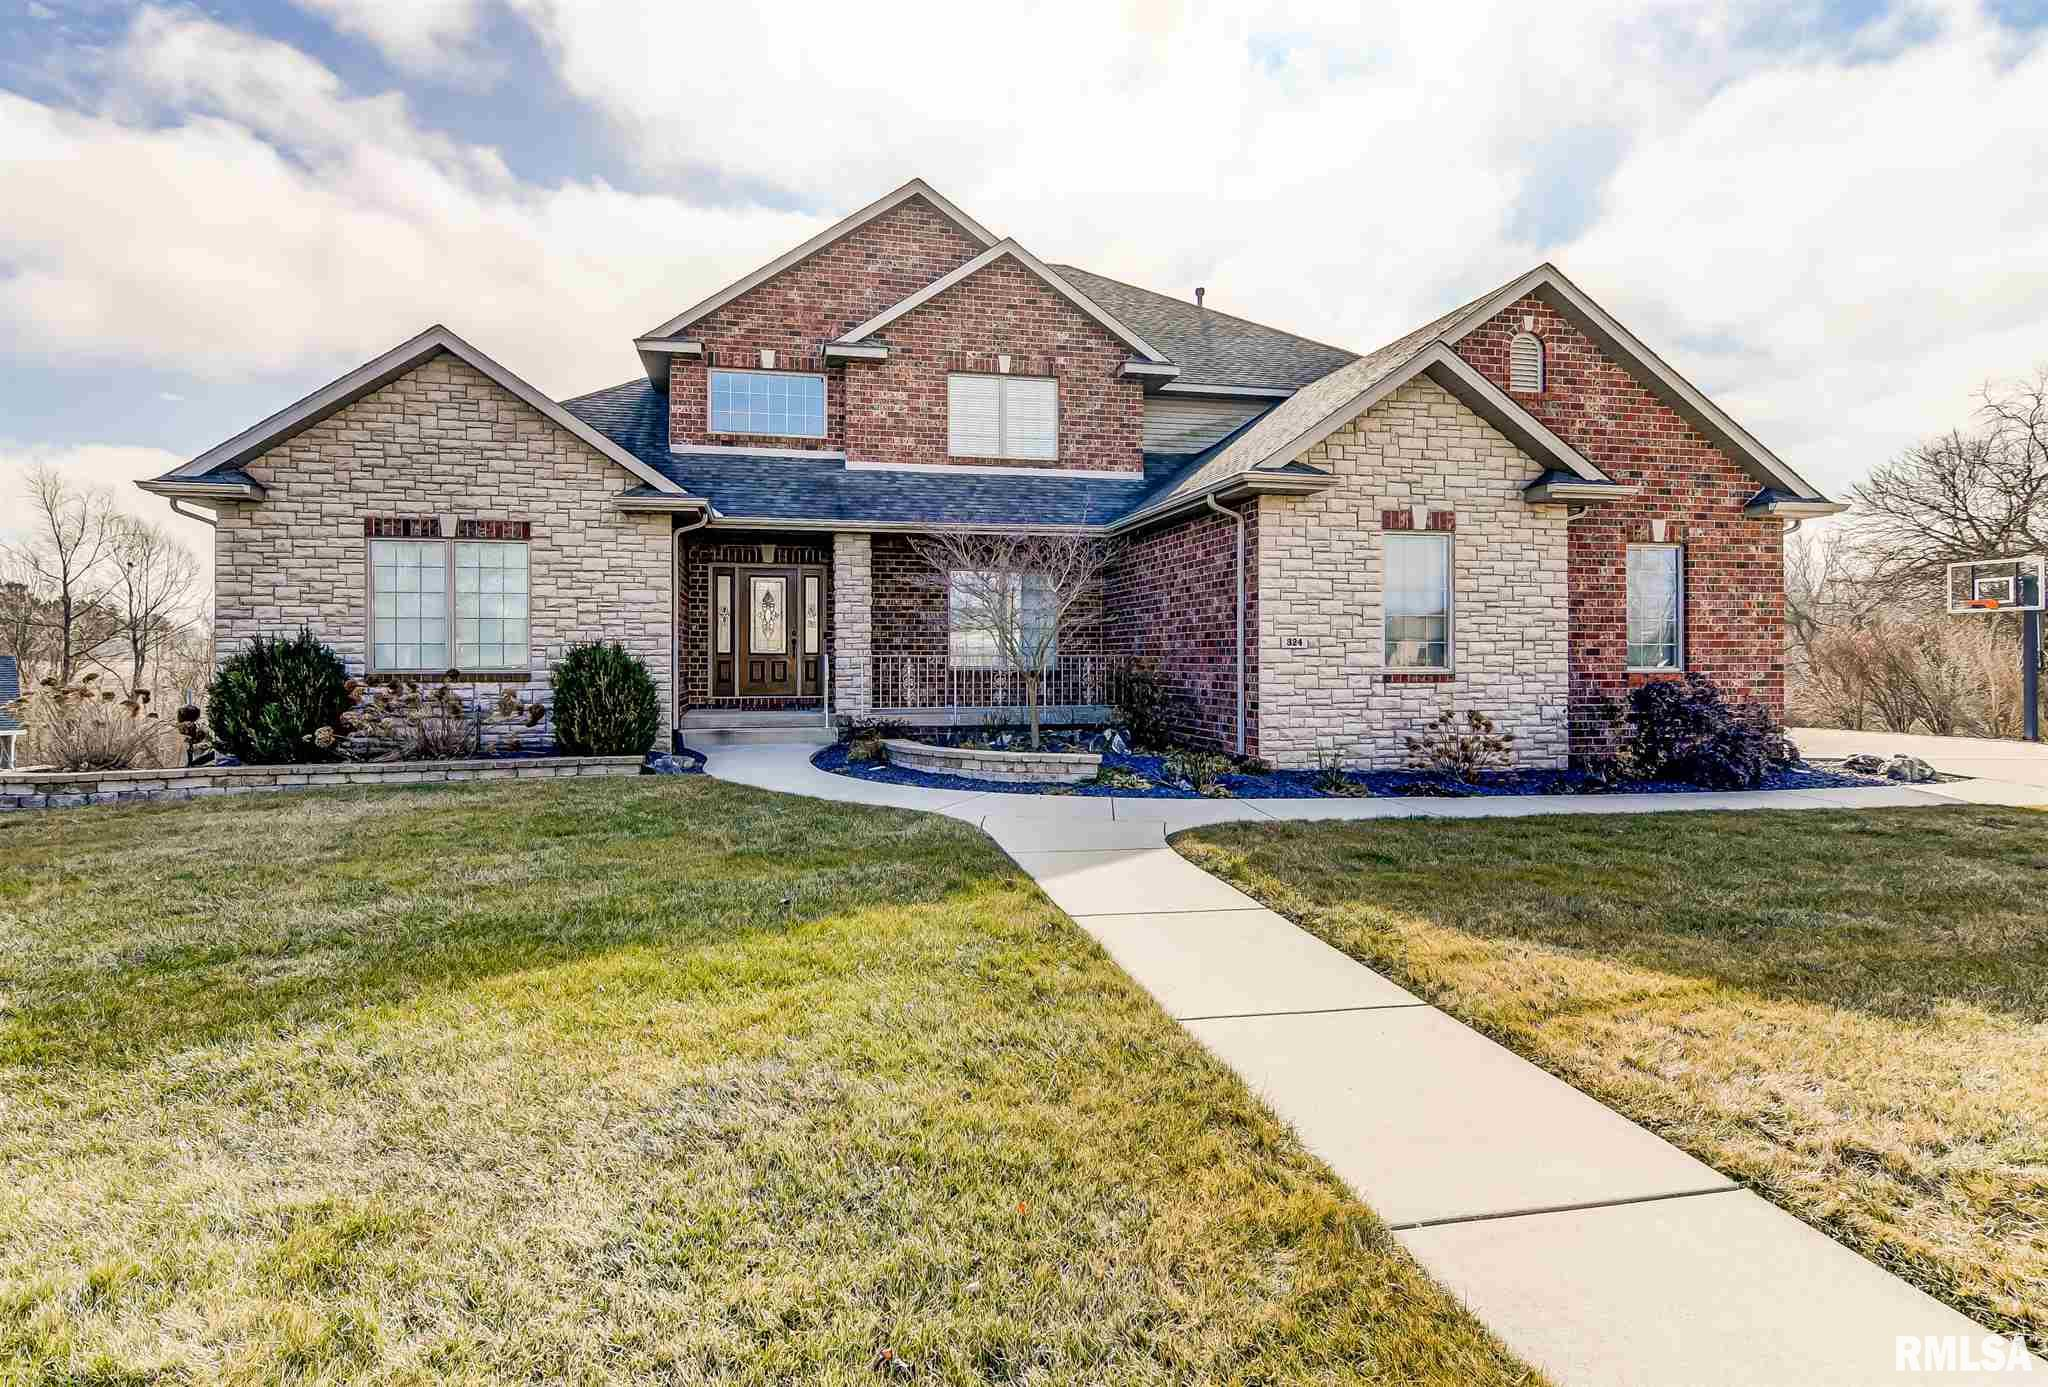 324 Grindstone Property Photo - Chatham, IL real estate listing